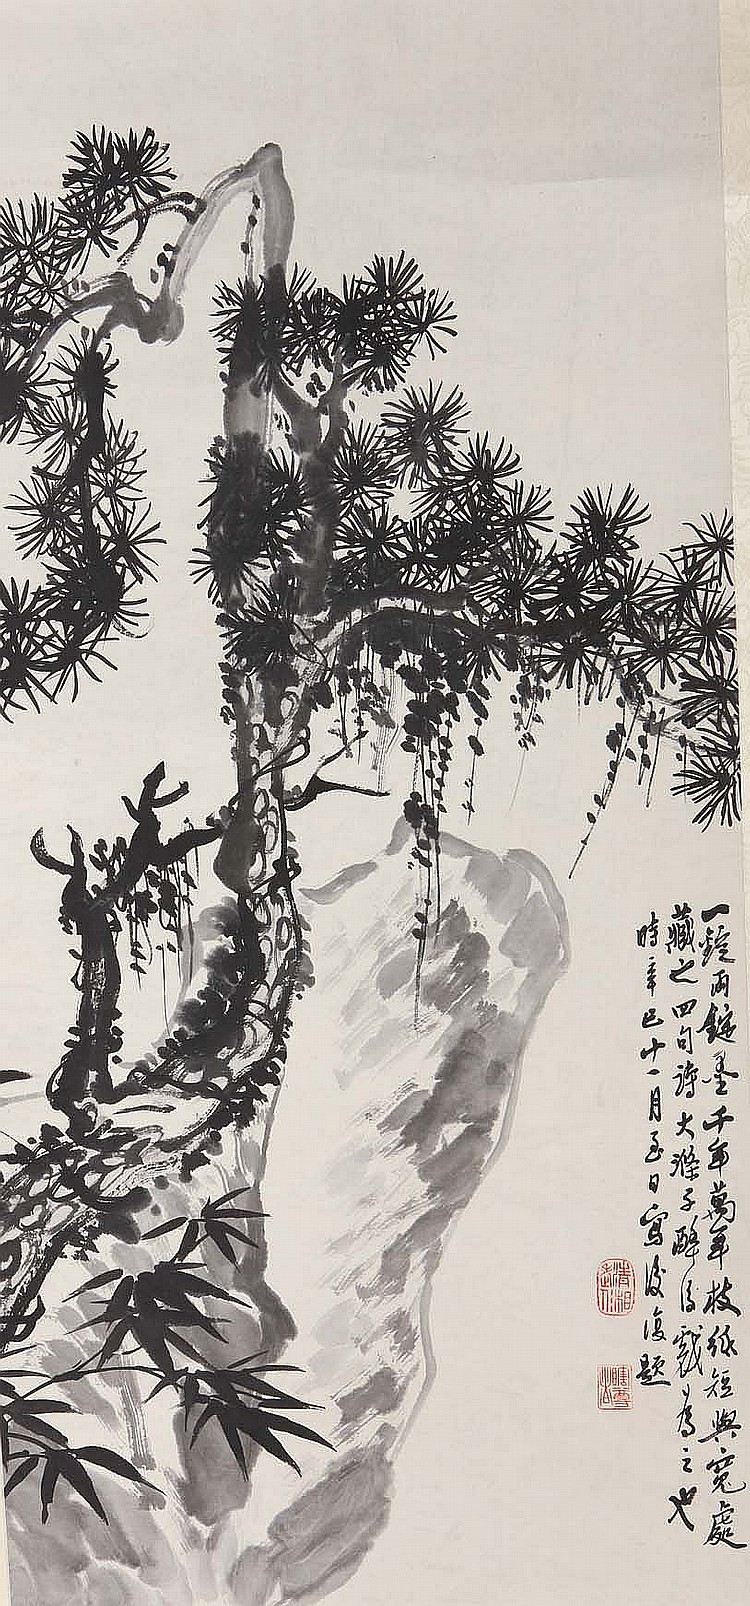 FOLLOWER OF SHI TAO (1642 – 1707).   Flowers, 86 x 40cm; pine and rocks, 85 x 41cm, ink on paper, hanging scroll. (2)   Provenance: Collection of Bernard Buckman (1910 – 1991).   ???  ????    ????????    ?????: ????? ????? ????? ?????  ????????? ???????? ????,??: ???????????    ?????: ??????? ??????? ??????? ??????? ??????? ??????? ??????? ??????? ????? ?,??: ??????